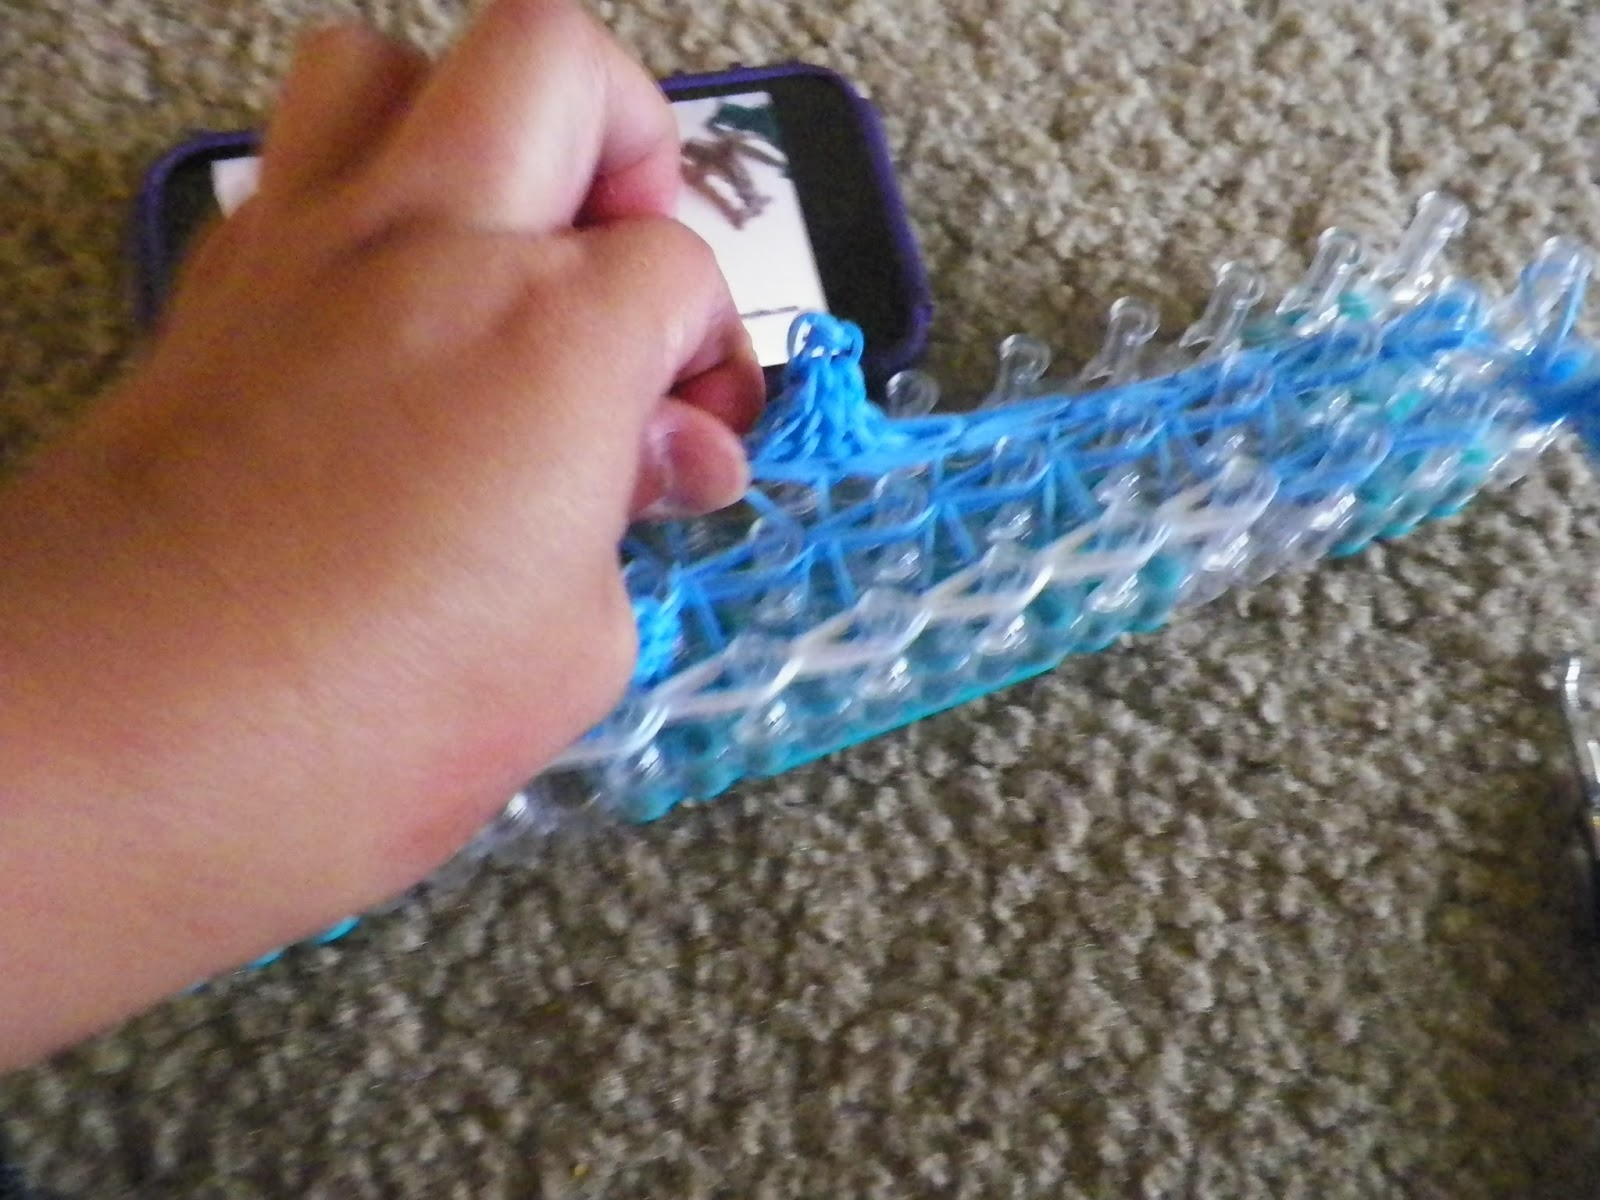 RubberBandBraceletLoomBandSet.jpg